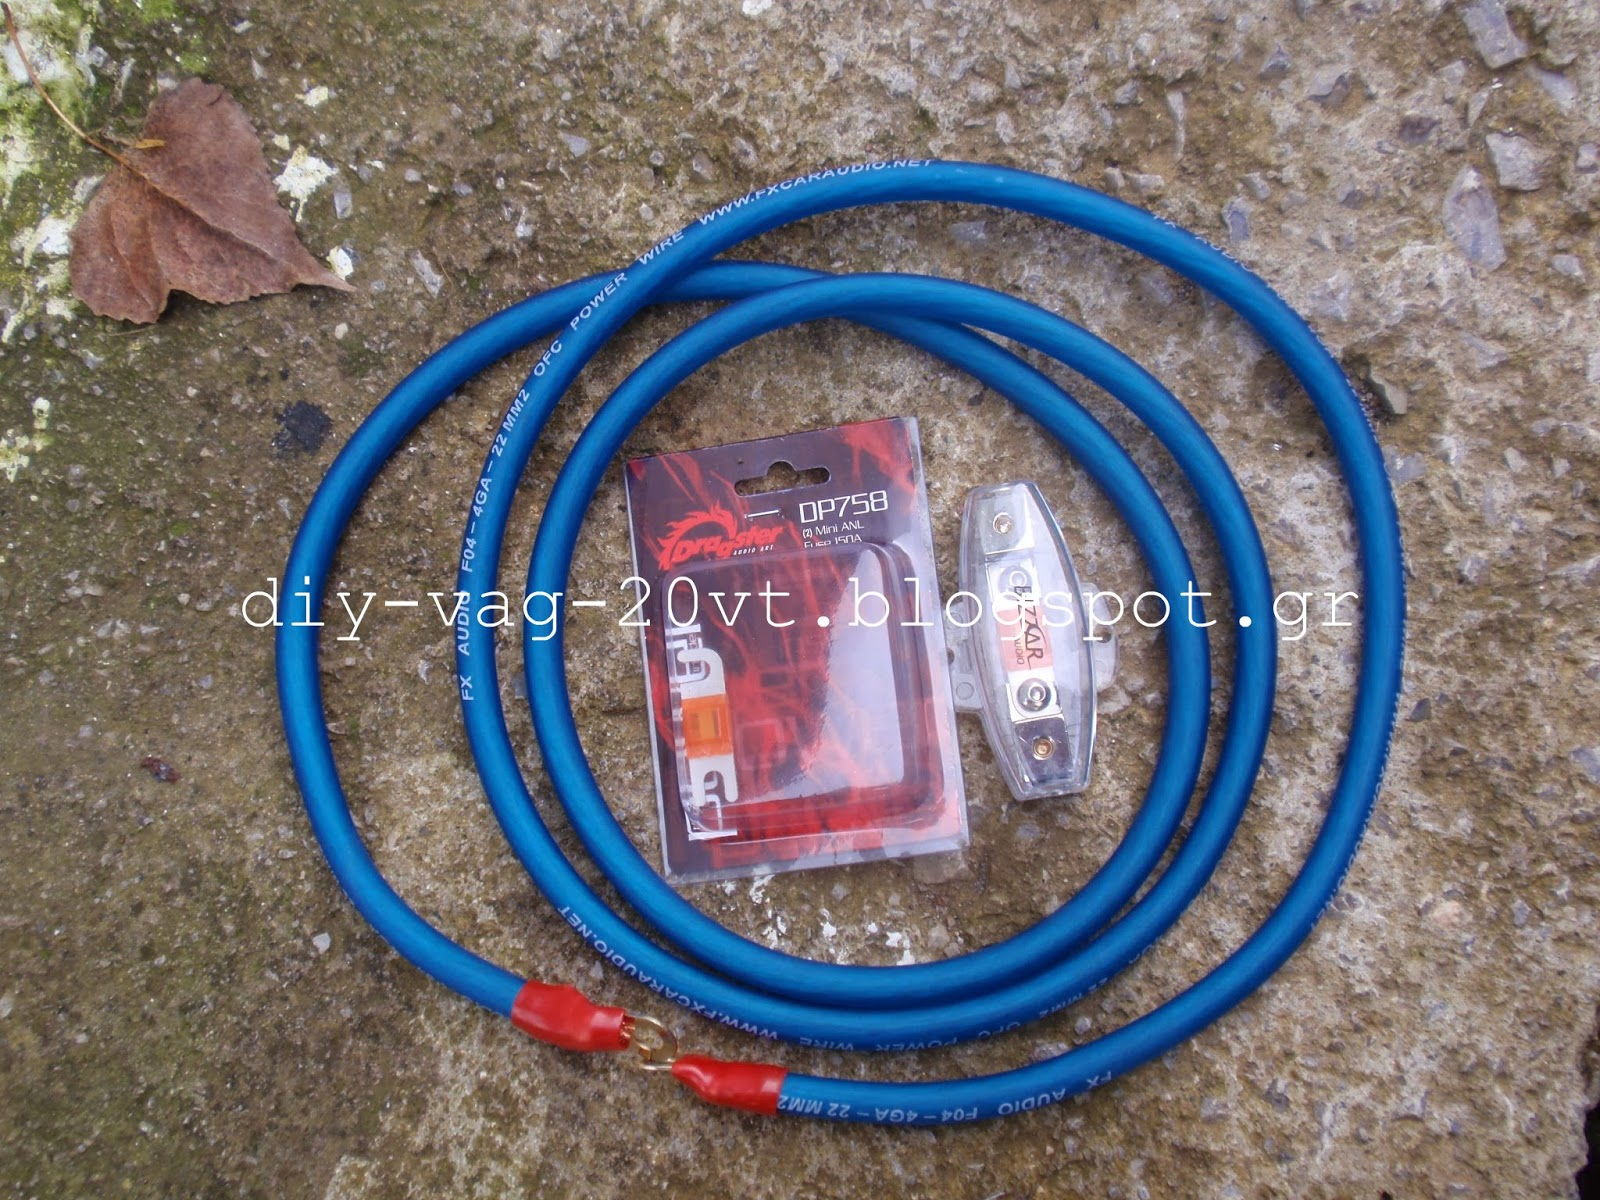 TOOLS: Allen No4, Ratchet with socket No10-13 2 metres of 4 gauge wire with  a 150A fuse box